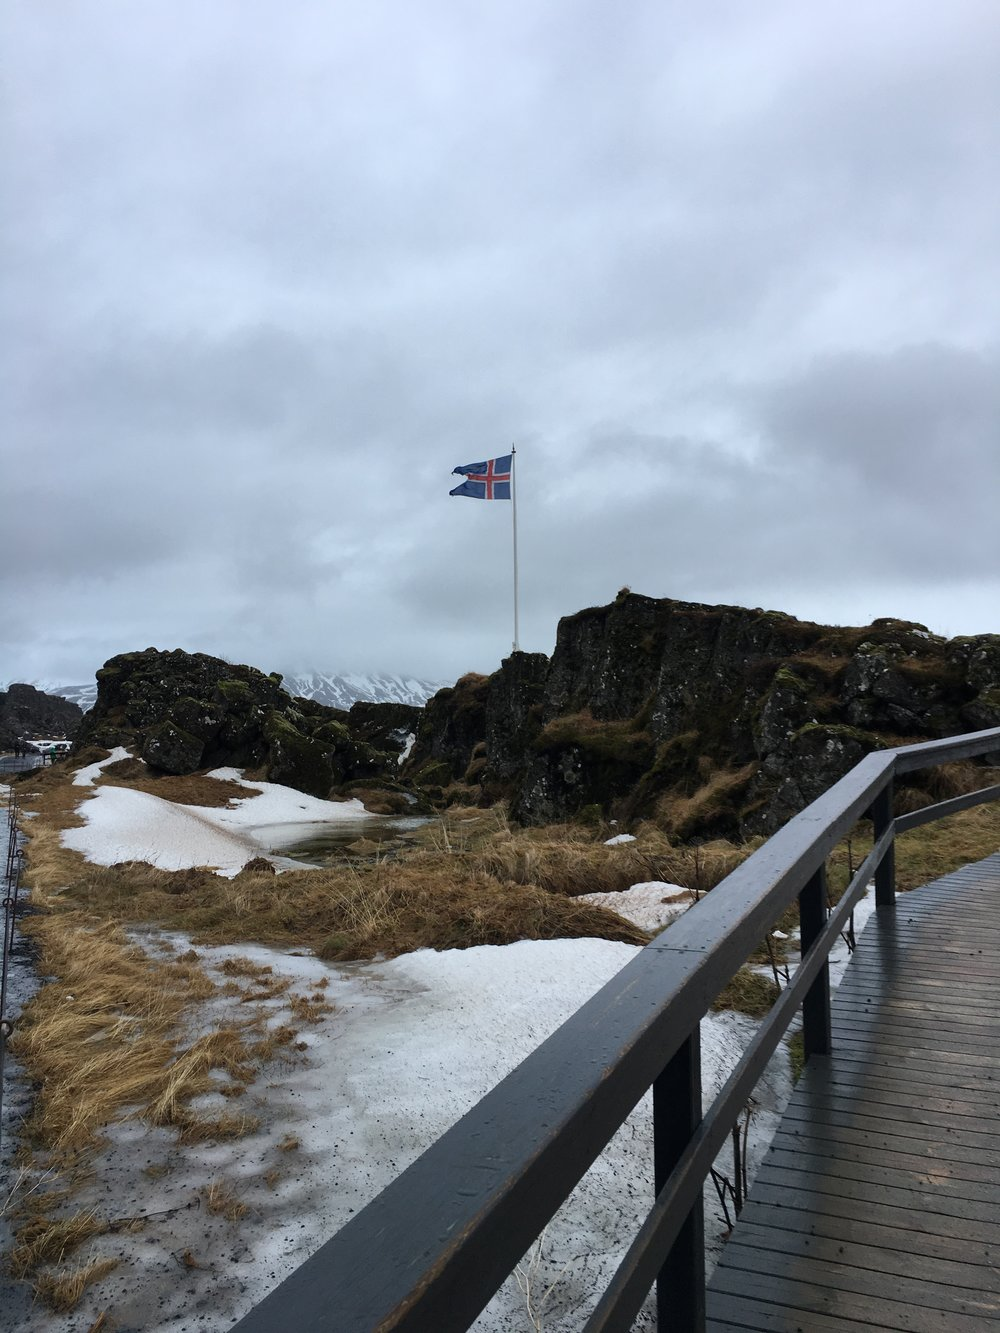 Pingvellir National park, a rift valley between the Eurasian and North American geological plates. What fascinated my Political Science major daughter most was that it's also the site where Vikings met starting one of the earliest forms of parliamentary government!